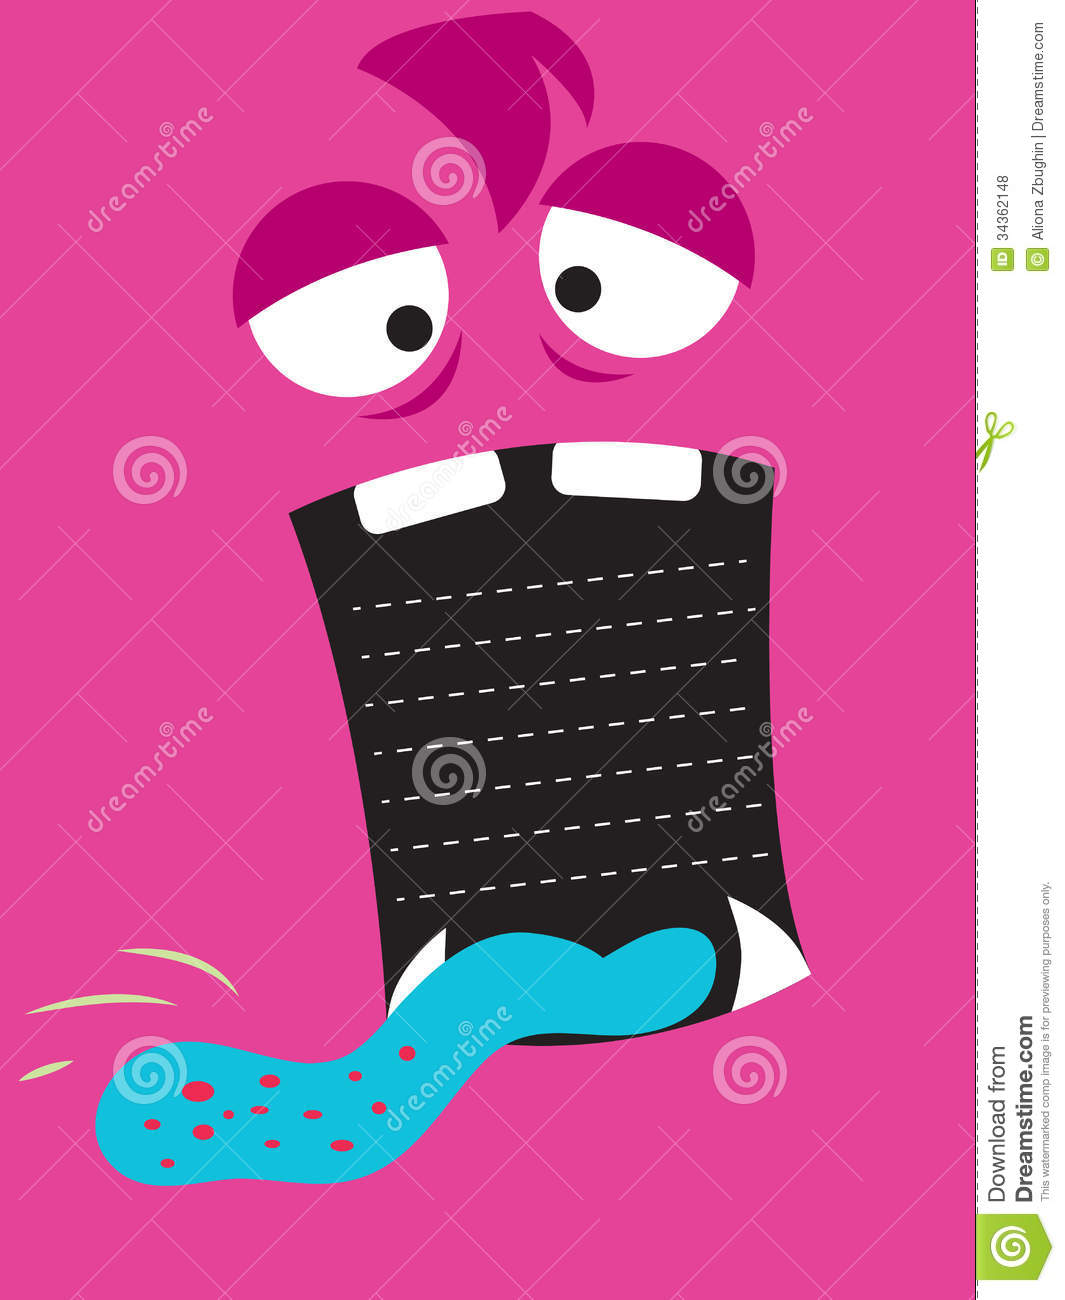 Monster stock vector. Illustration of message, tongue - 34362148